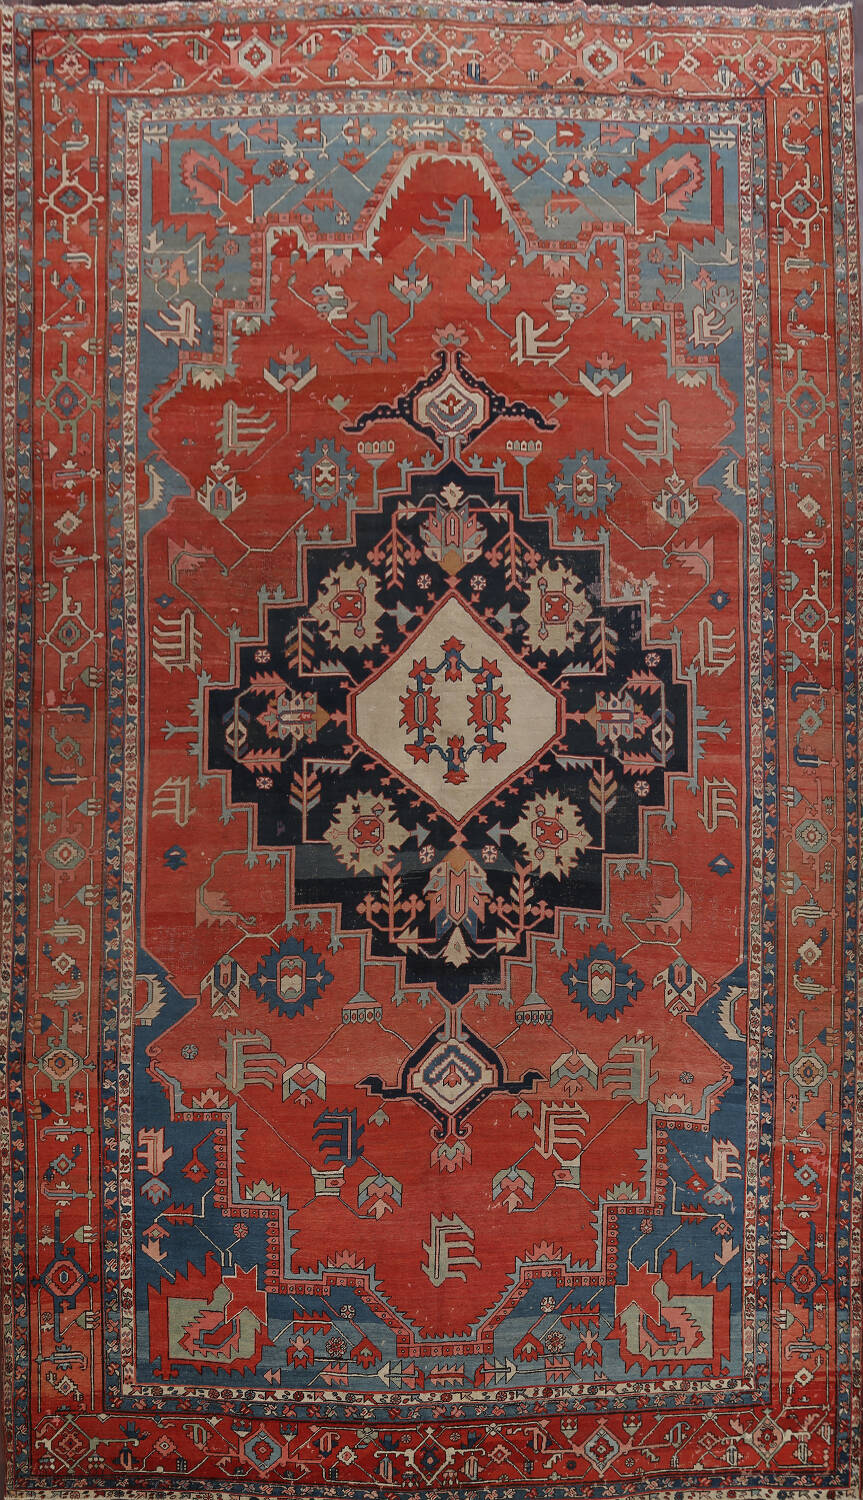 Pre-1900 Antique Heriz Serapi Vegetable Dye Persian Rug 12x16 image 1